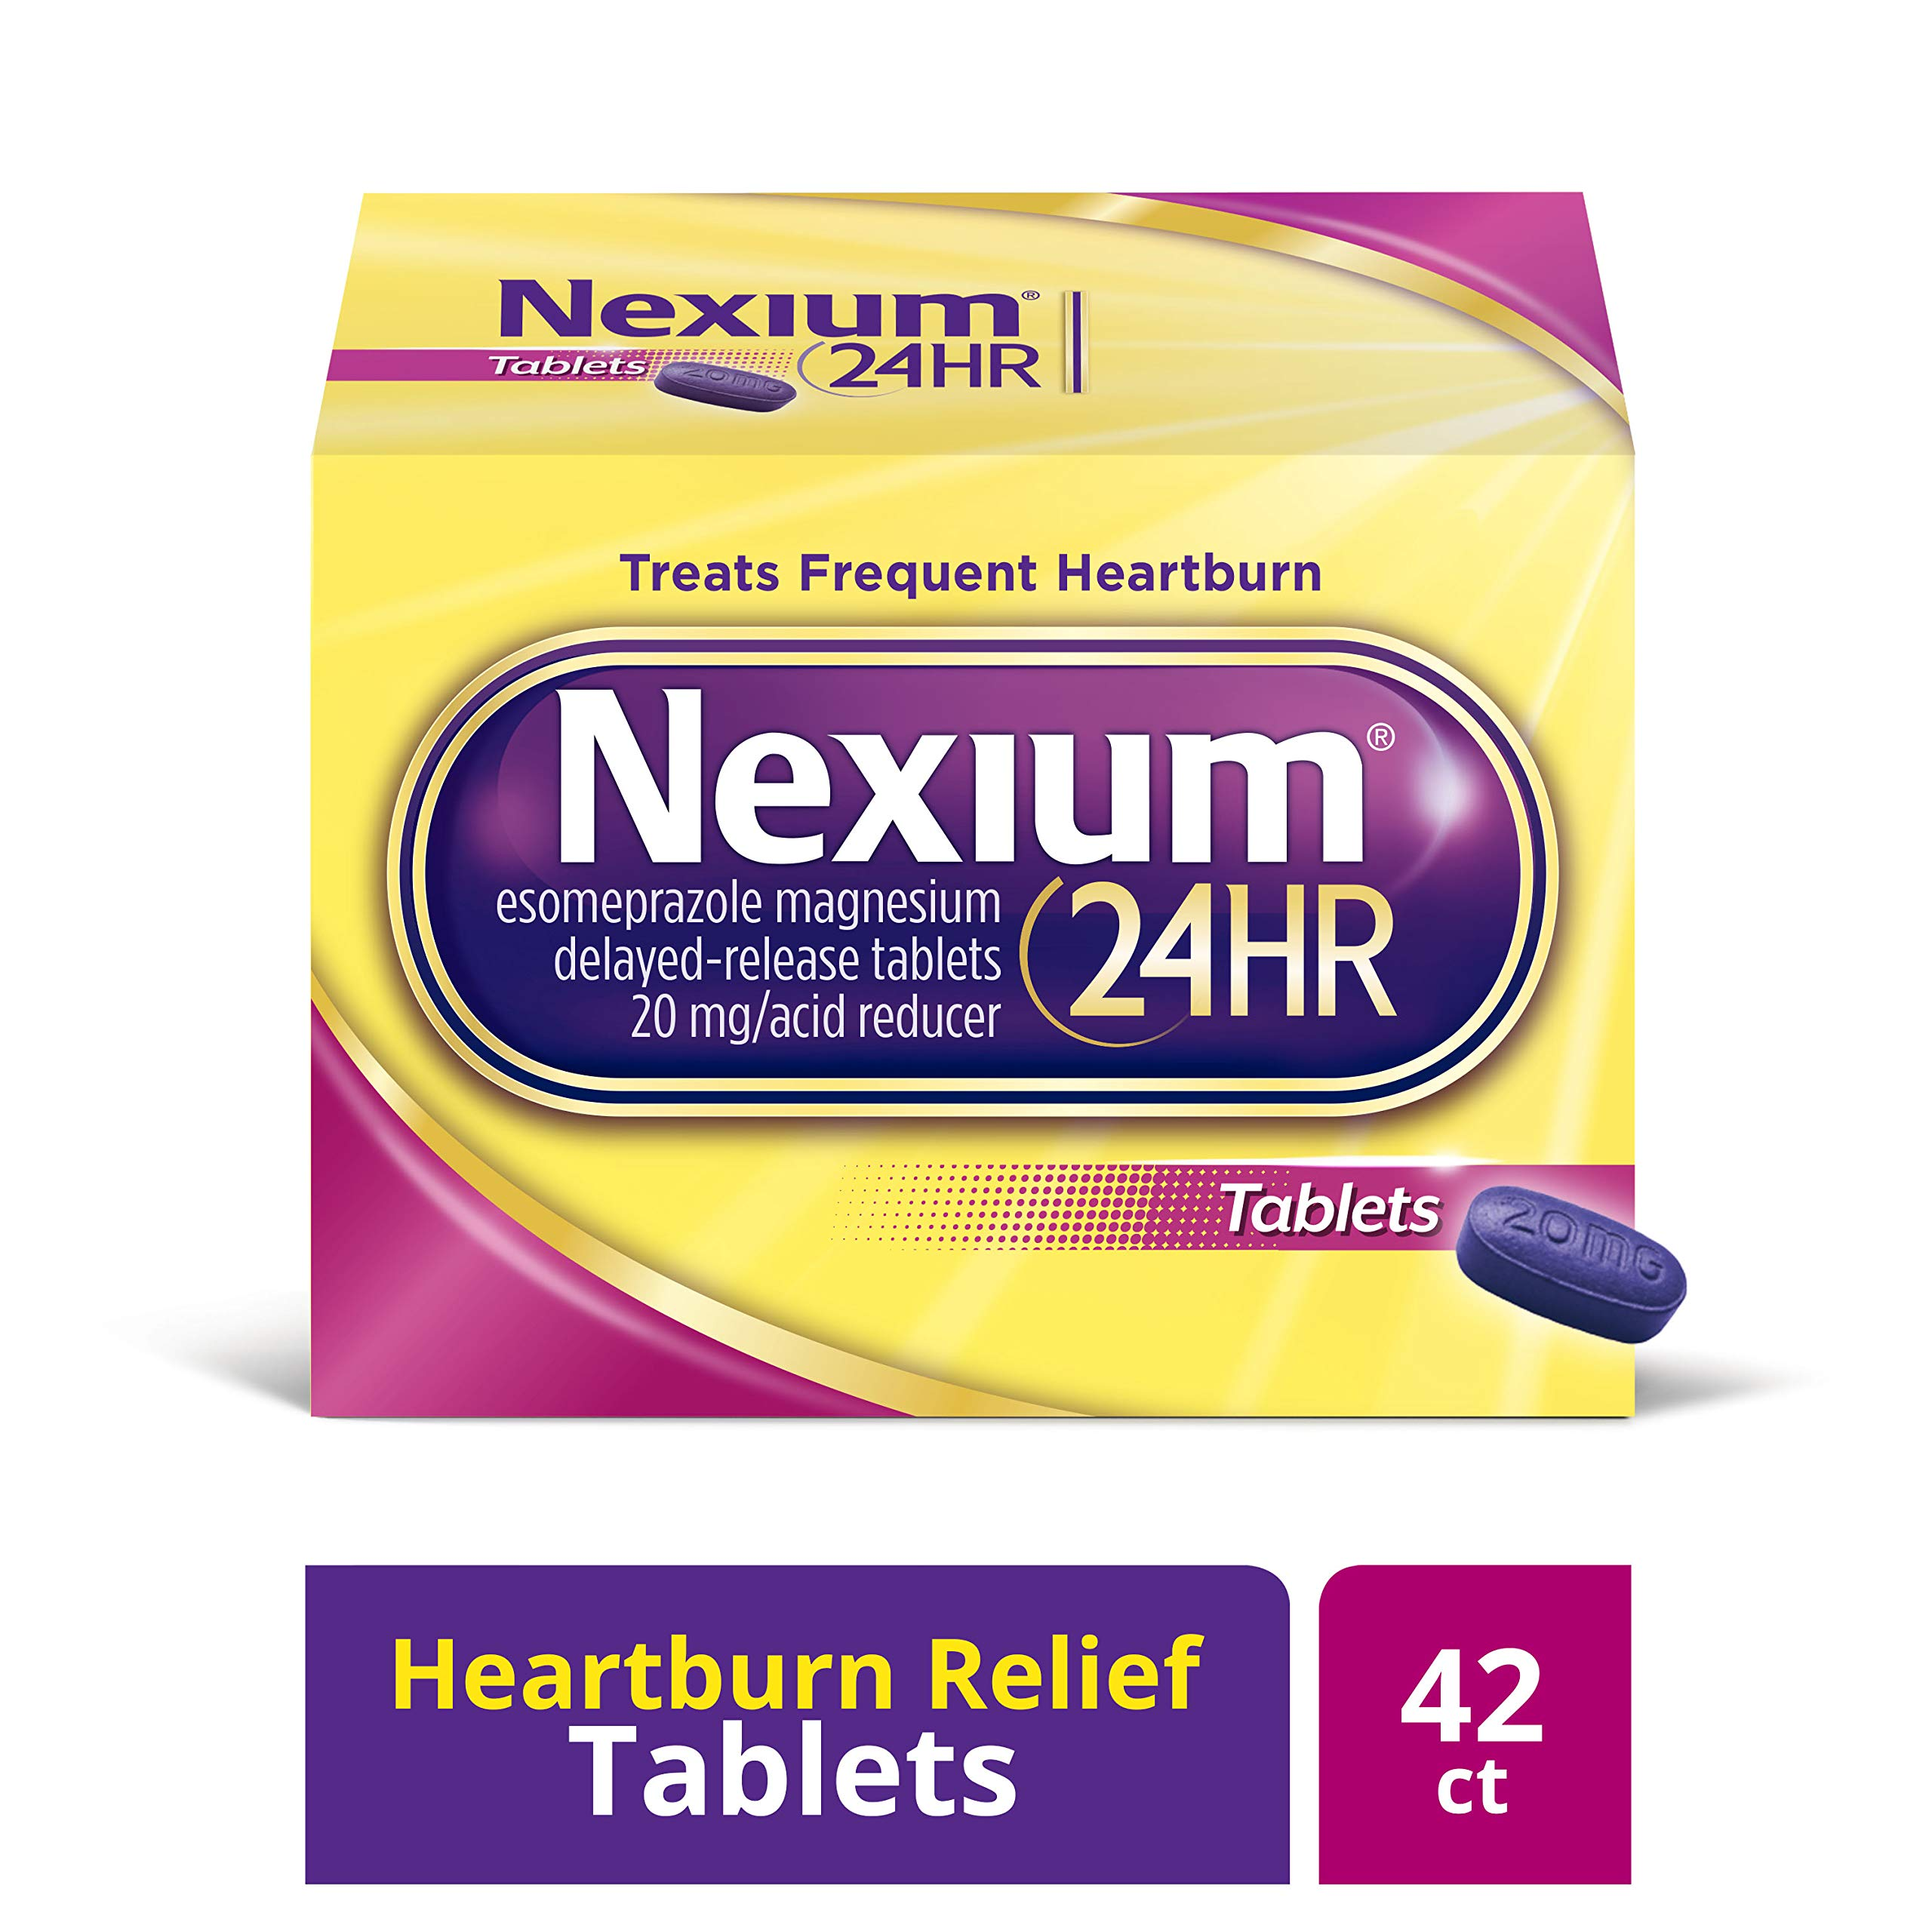 Nexium 24HR (42 Count, Tablets) All-Day, All-Night Protection from Frequent Heartburn Medicine with Esomeprazole Magnesium 20mg Acid Reducer by Nexium